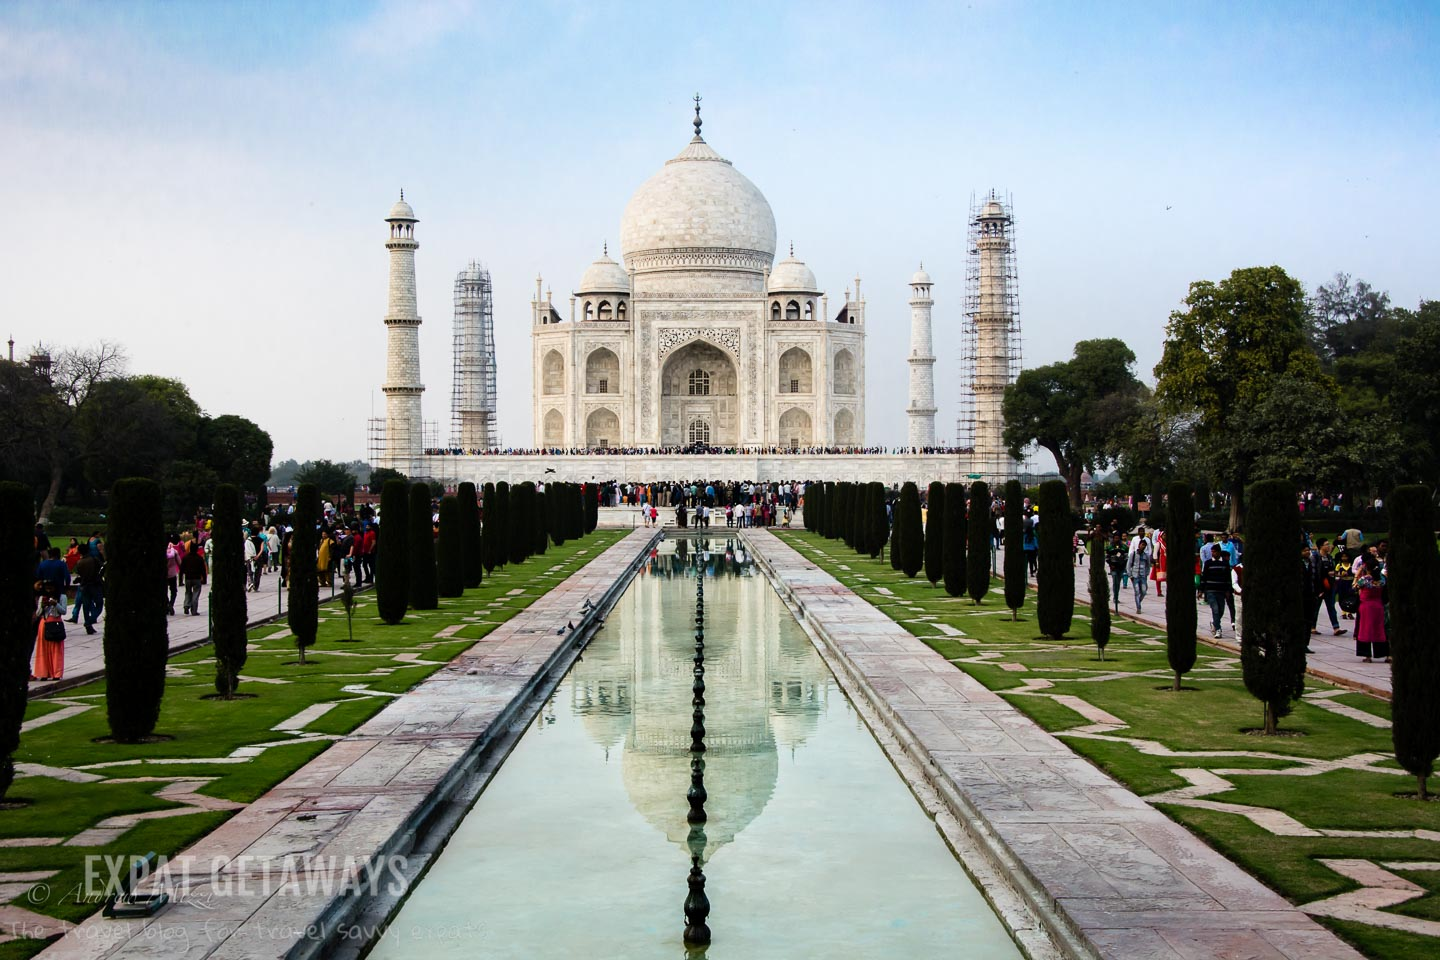 Another one off the bucket list. The Taj Mahal is even more amazing in person as it is in the photos. Expat Getaways, 5 Nights Golden Triangle, Delhi, Jaipur & Agra, India.